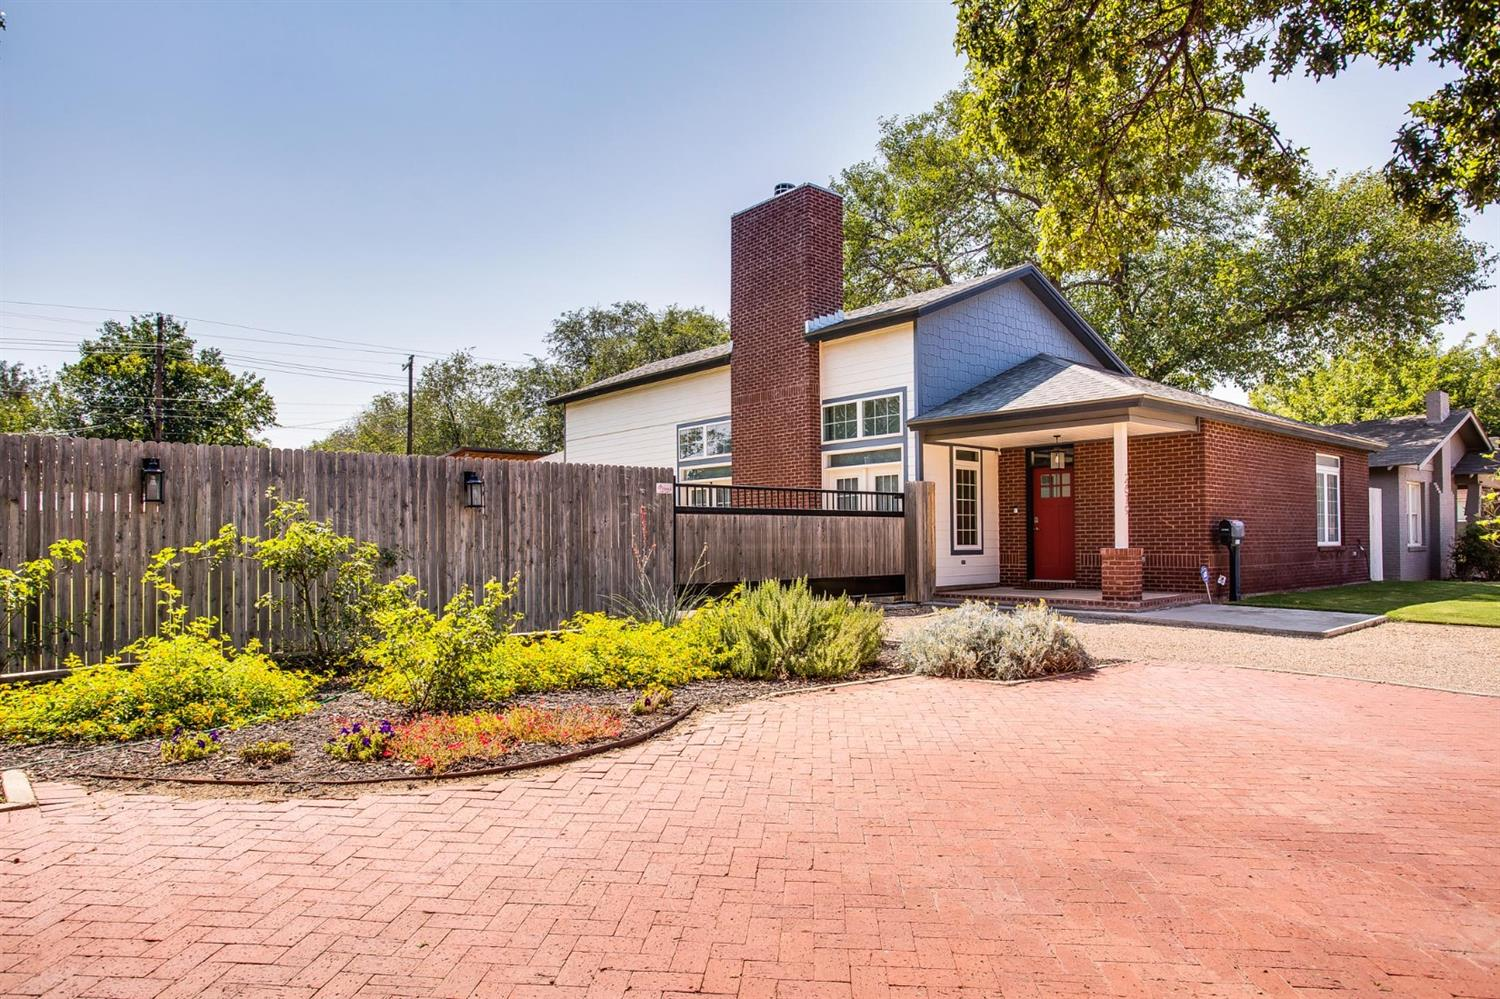 One of a kind gem in Tech Terrace. A custom build completed in 2017 on two separate lots, making this listing one of the most unique properties near TTU campus. The front entrance leads into a stunning 19 ft vaulted living area with a cozy fireplace and stained concrete floors. The remaining rooms with 10 ft ceilings add spaciousness throughout. Interesting features include a safe room engineered by the Texas Tech Wind Department, no hallways ensuring no wasted space inside, and master bath skylights for soft natural lighting. The connecting lot, which is tucked in behind a 7 ft. privacy fence and electric gate, has a covered RV space with full hookups (water, electric, and sewer), and plenty of space for whatever you can imagine. Come check out this one of a kind home today!